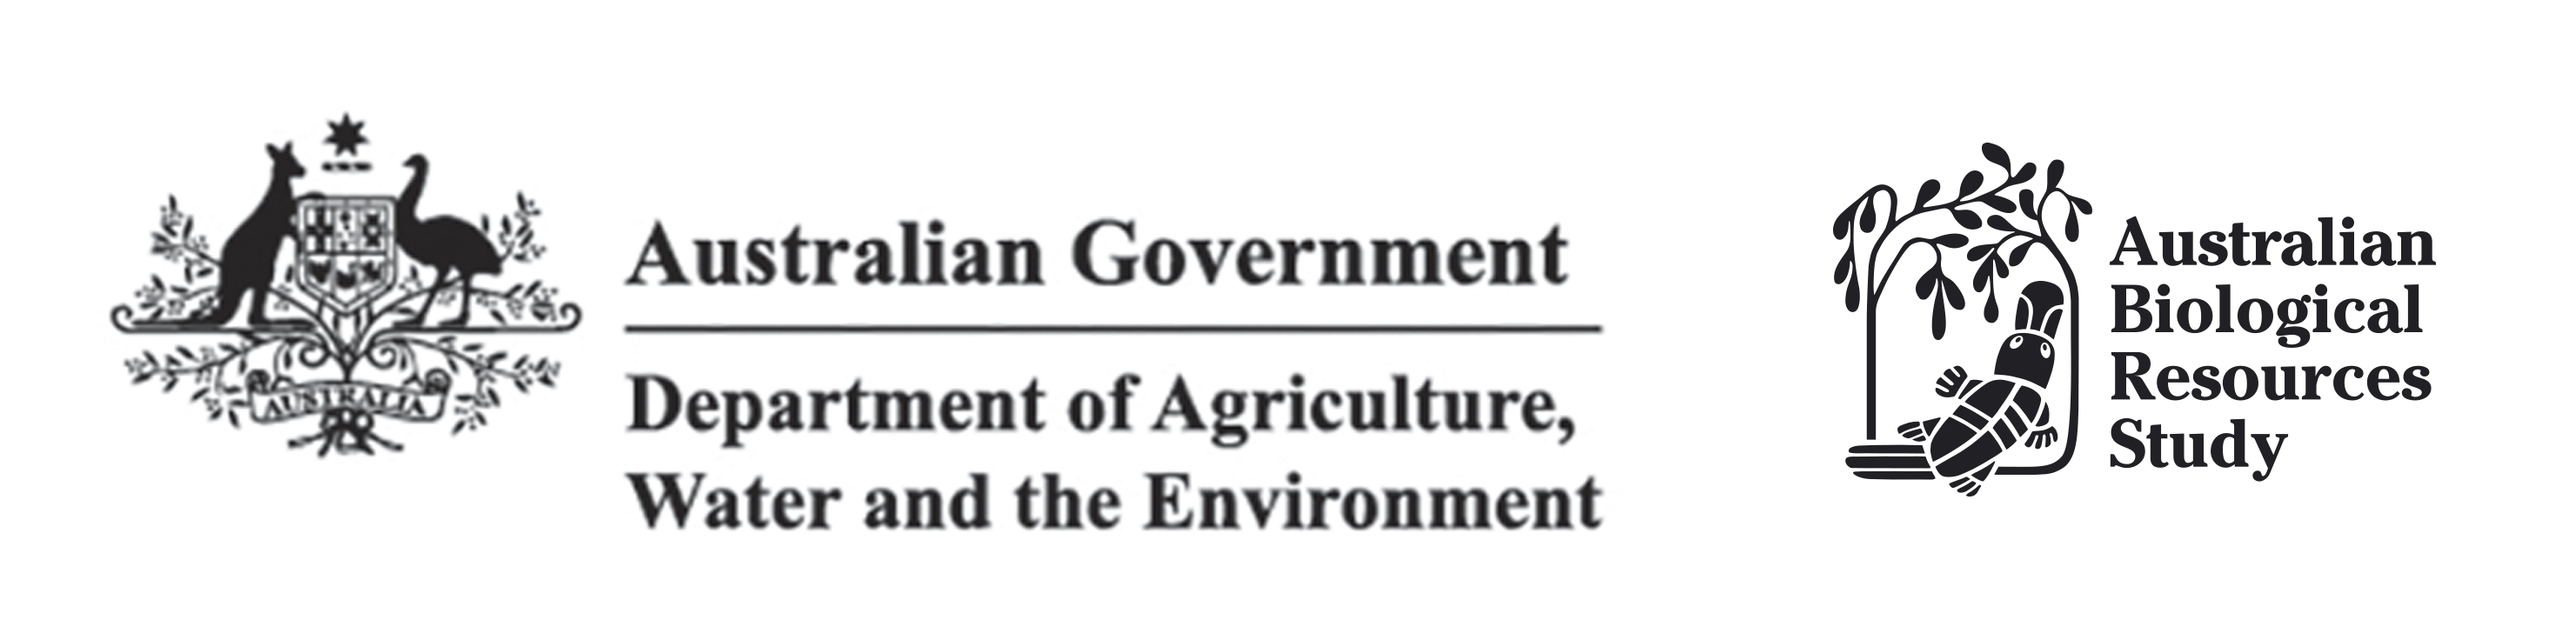 Logos for the Department of the Environment and Energy; and, Australian Biological Resoruces Study (ABRS).